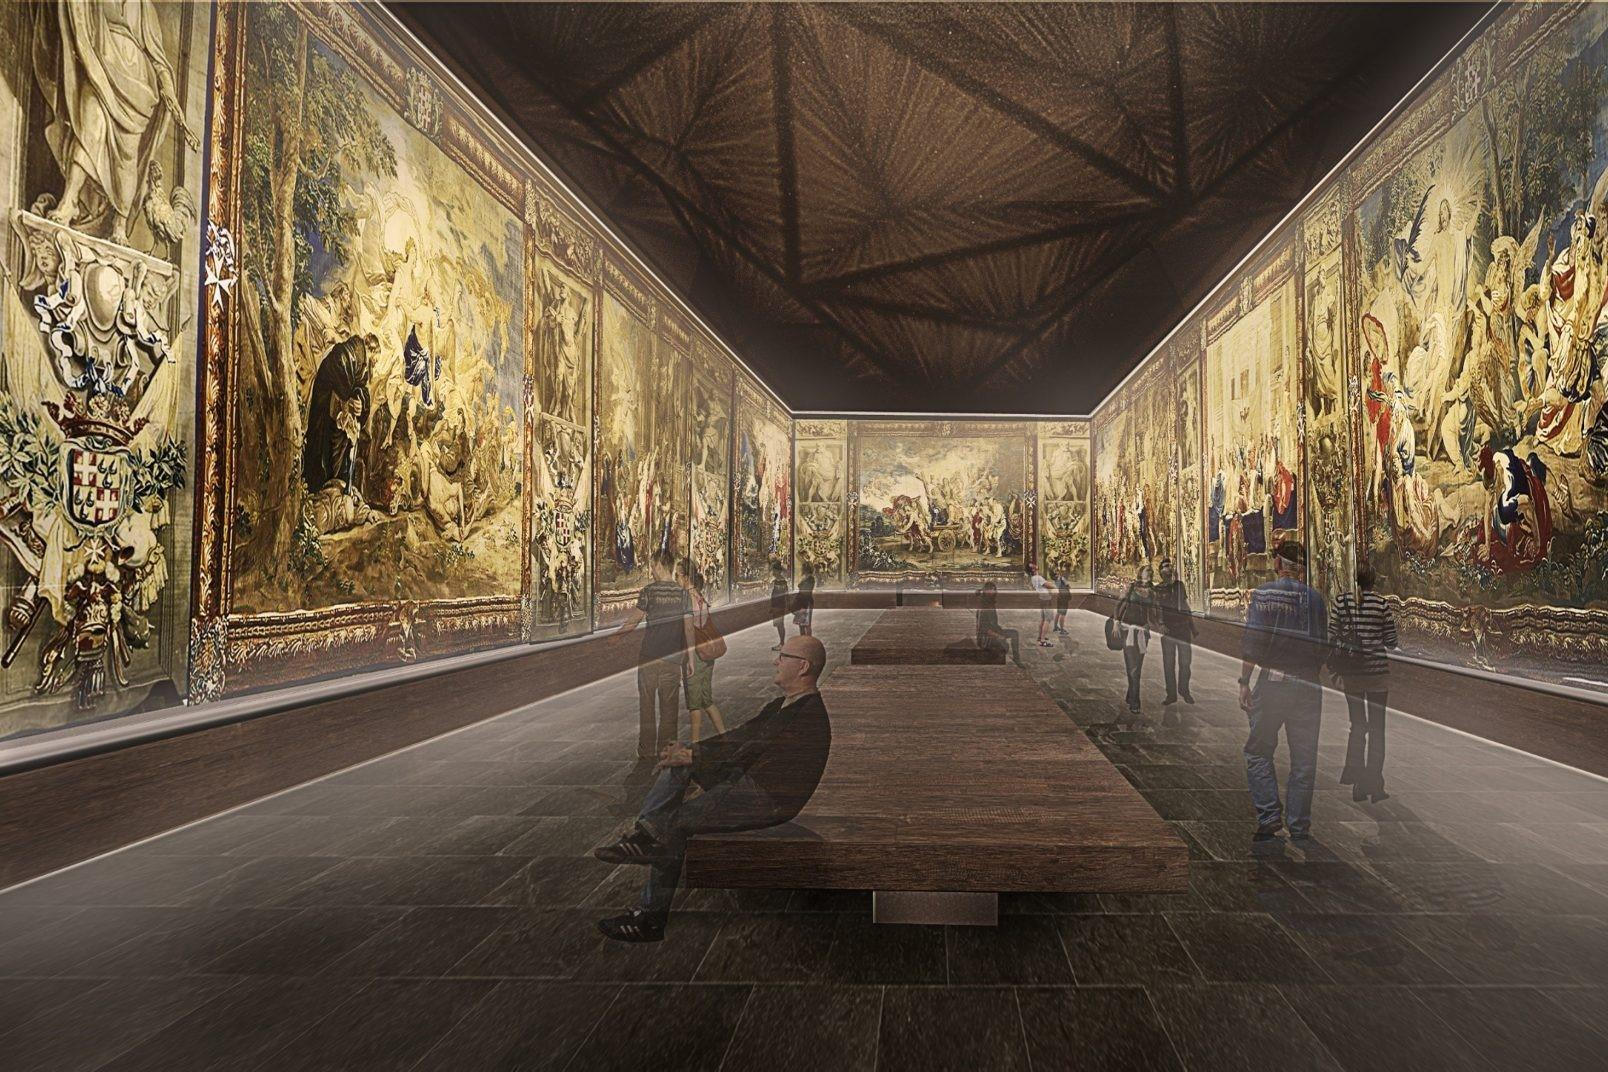 The St John's museum extension tapestry hall